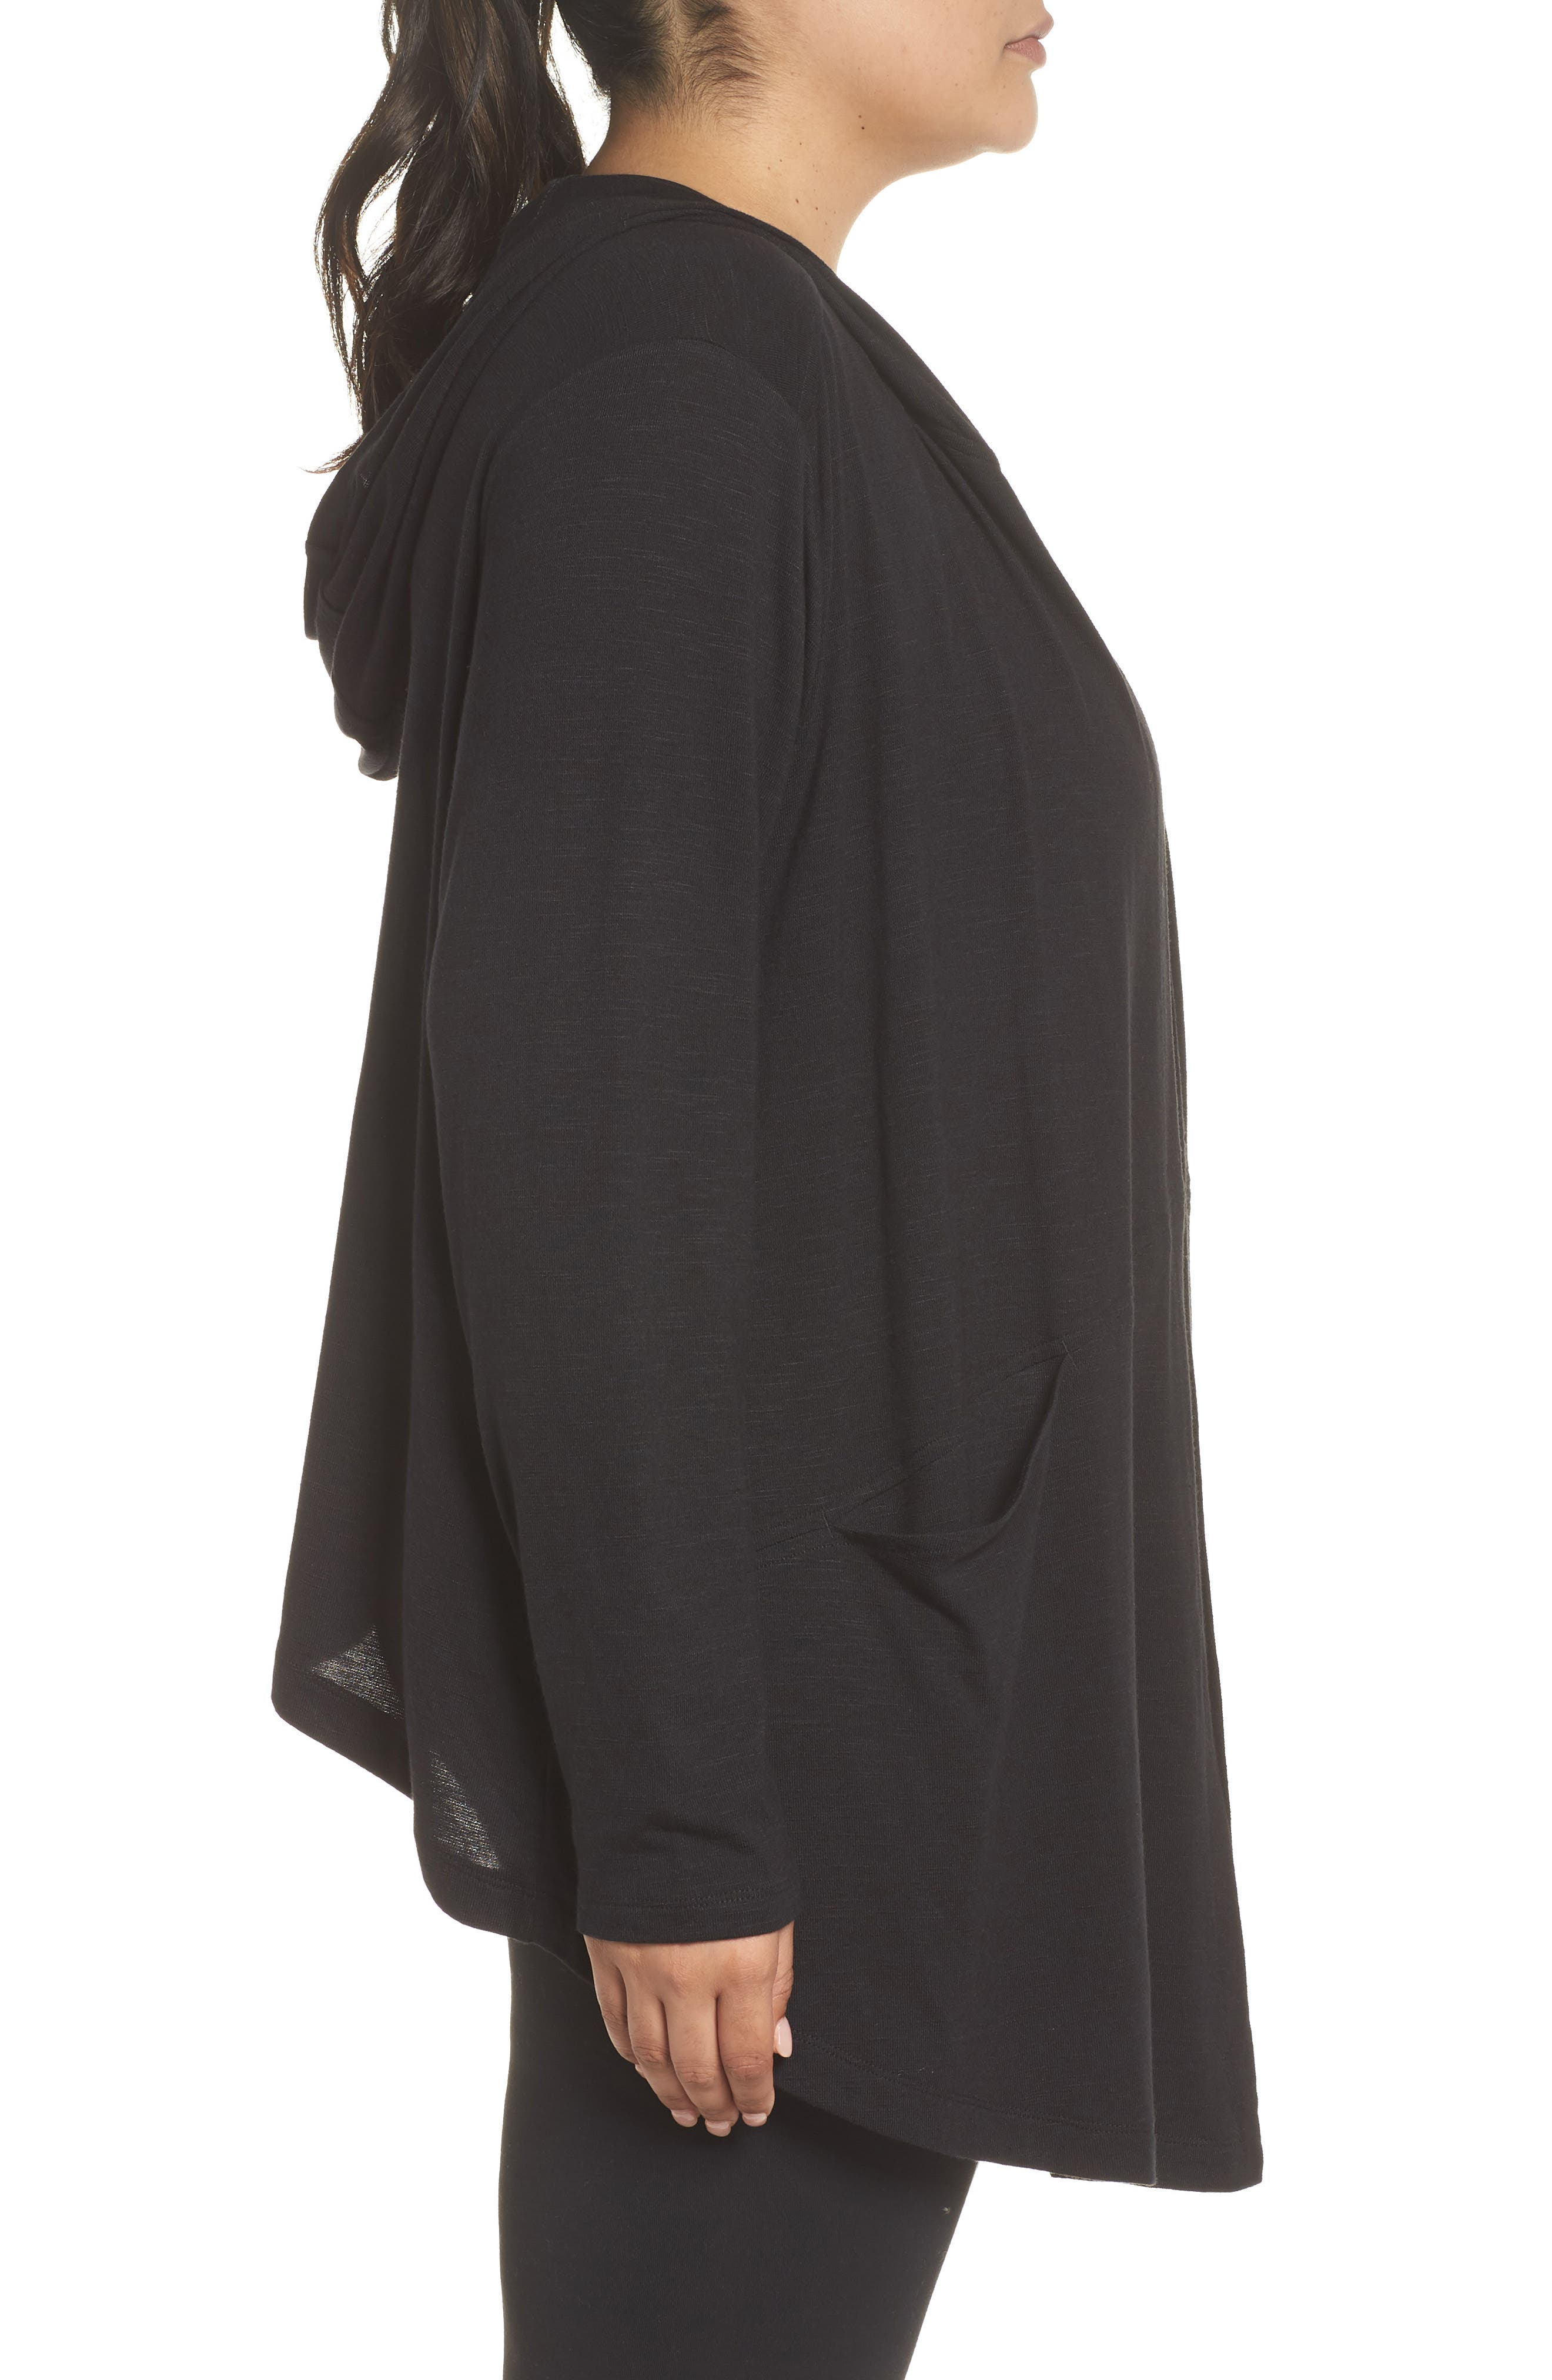 After Class Hooded Cardigan,                             Alternate thumbnail 3, color,                             BLACK